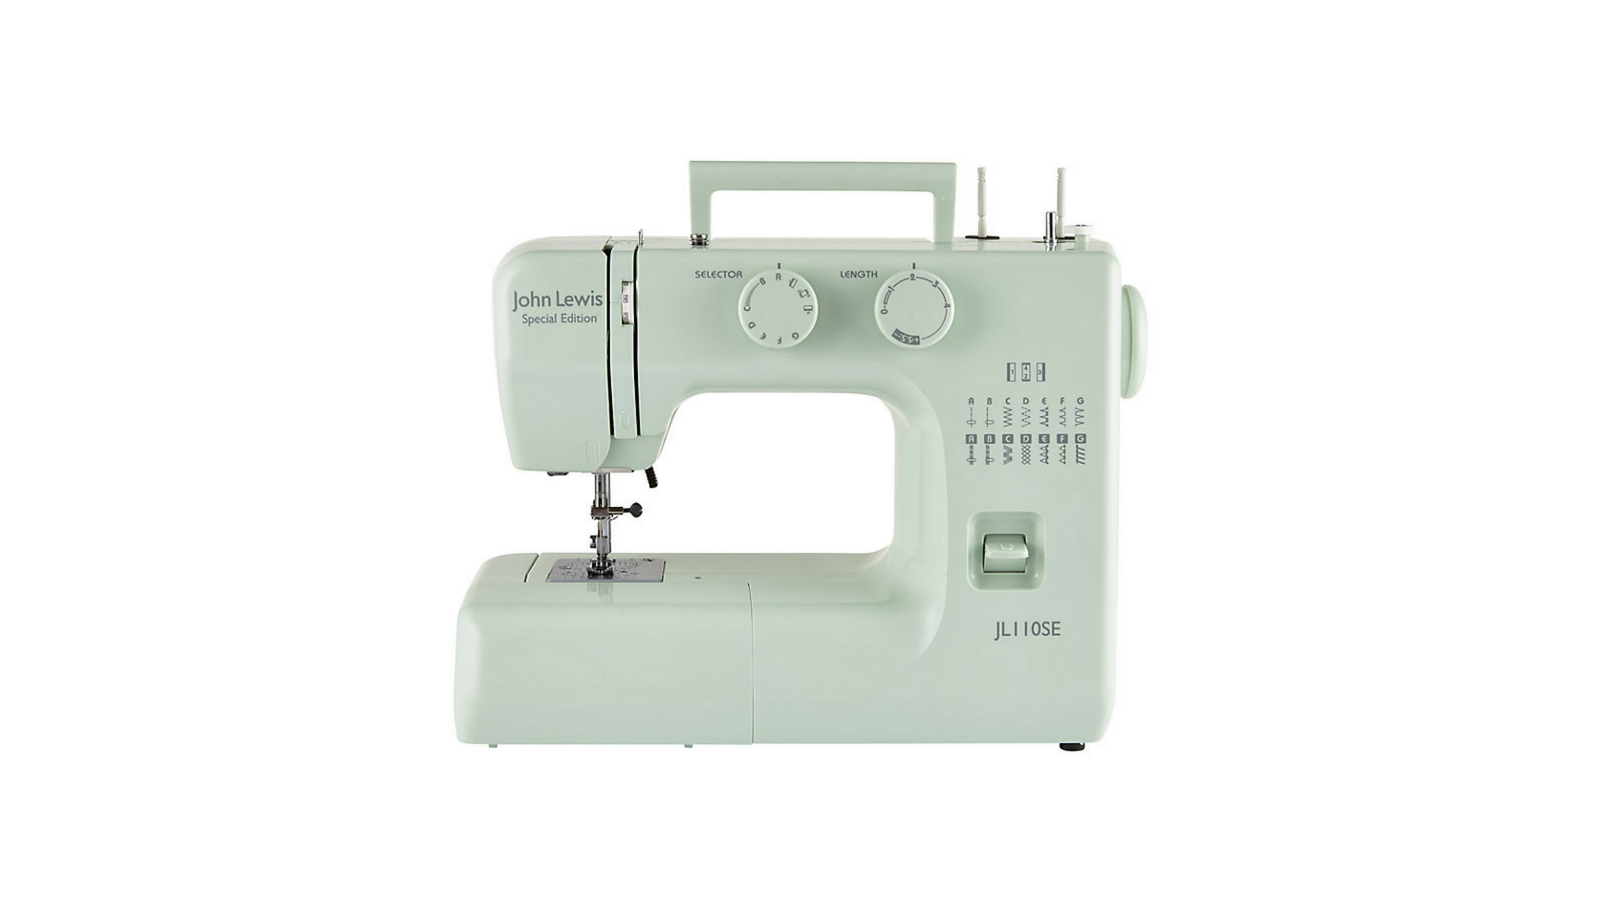 Best sewing machines 2019: The perfect stitch, from £99